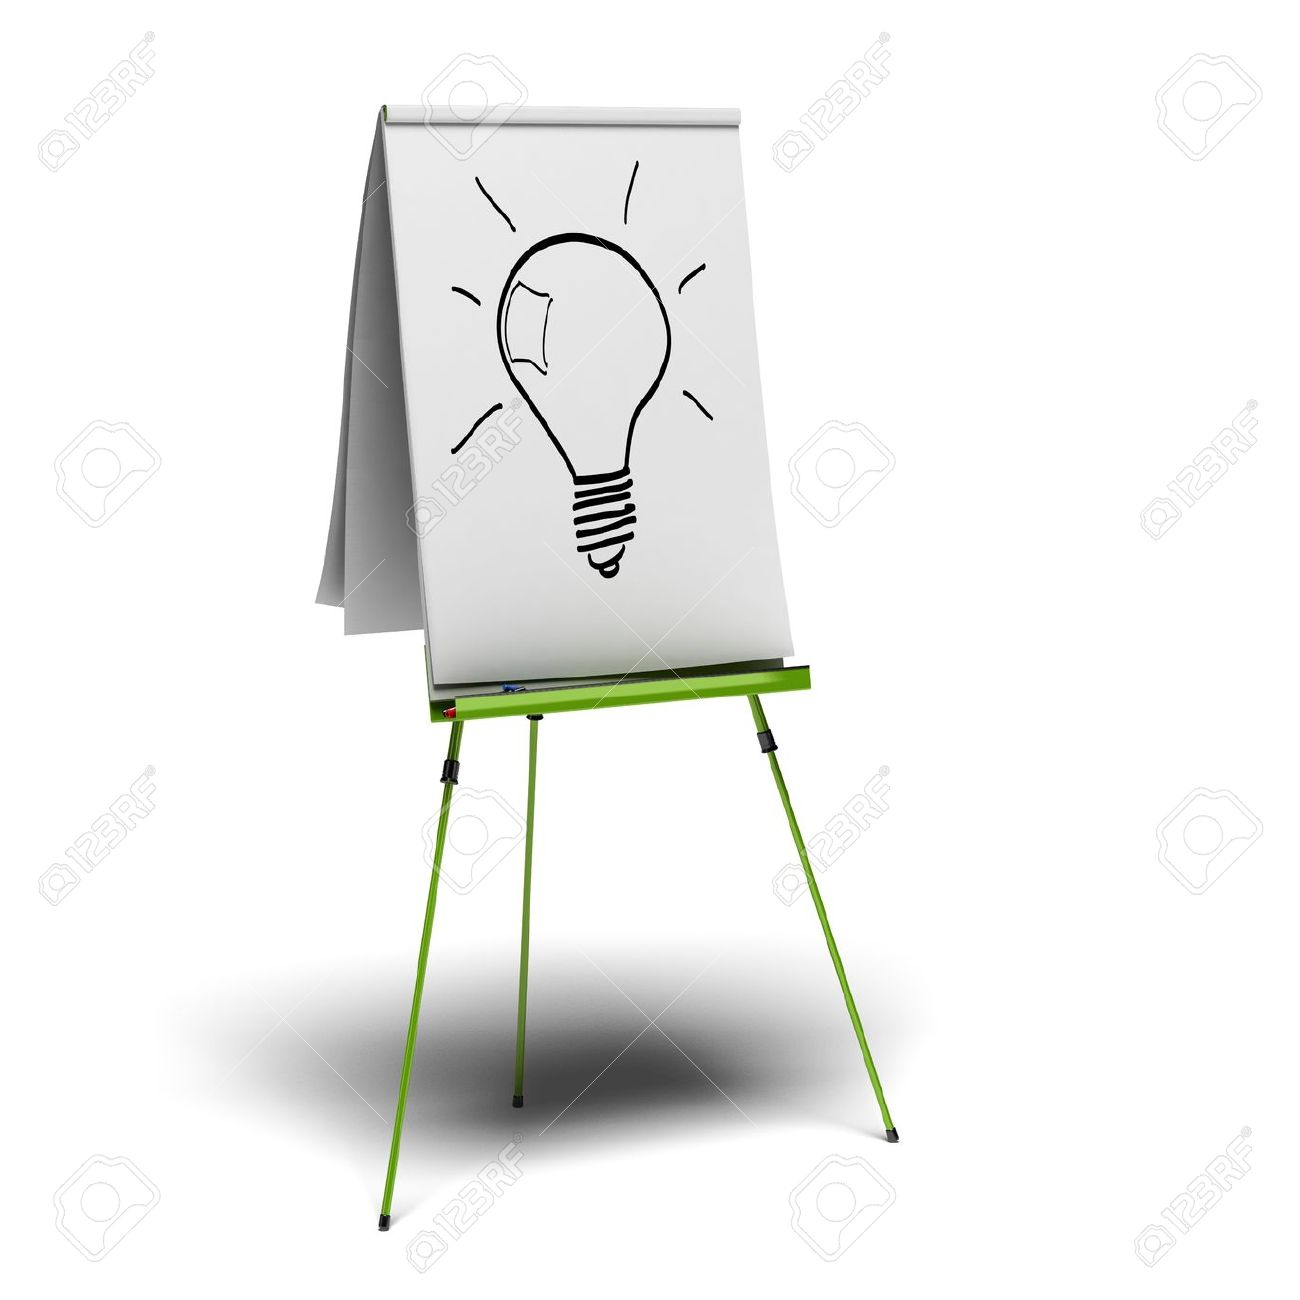 1300x1300 Flipchart Stock Photos. Royalty Free Business Images